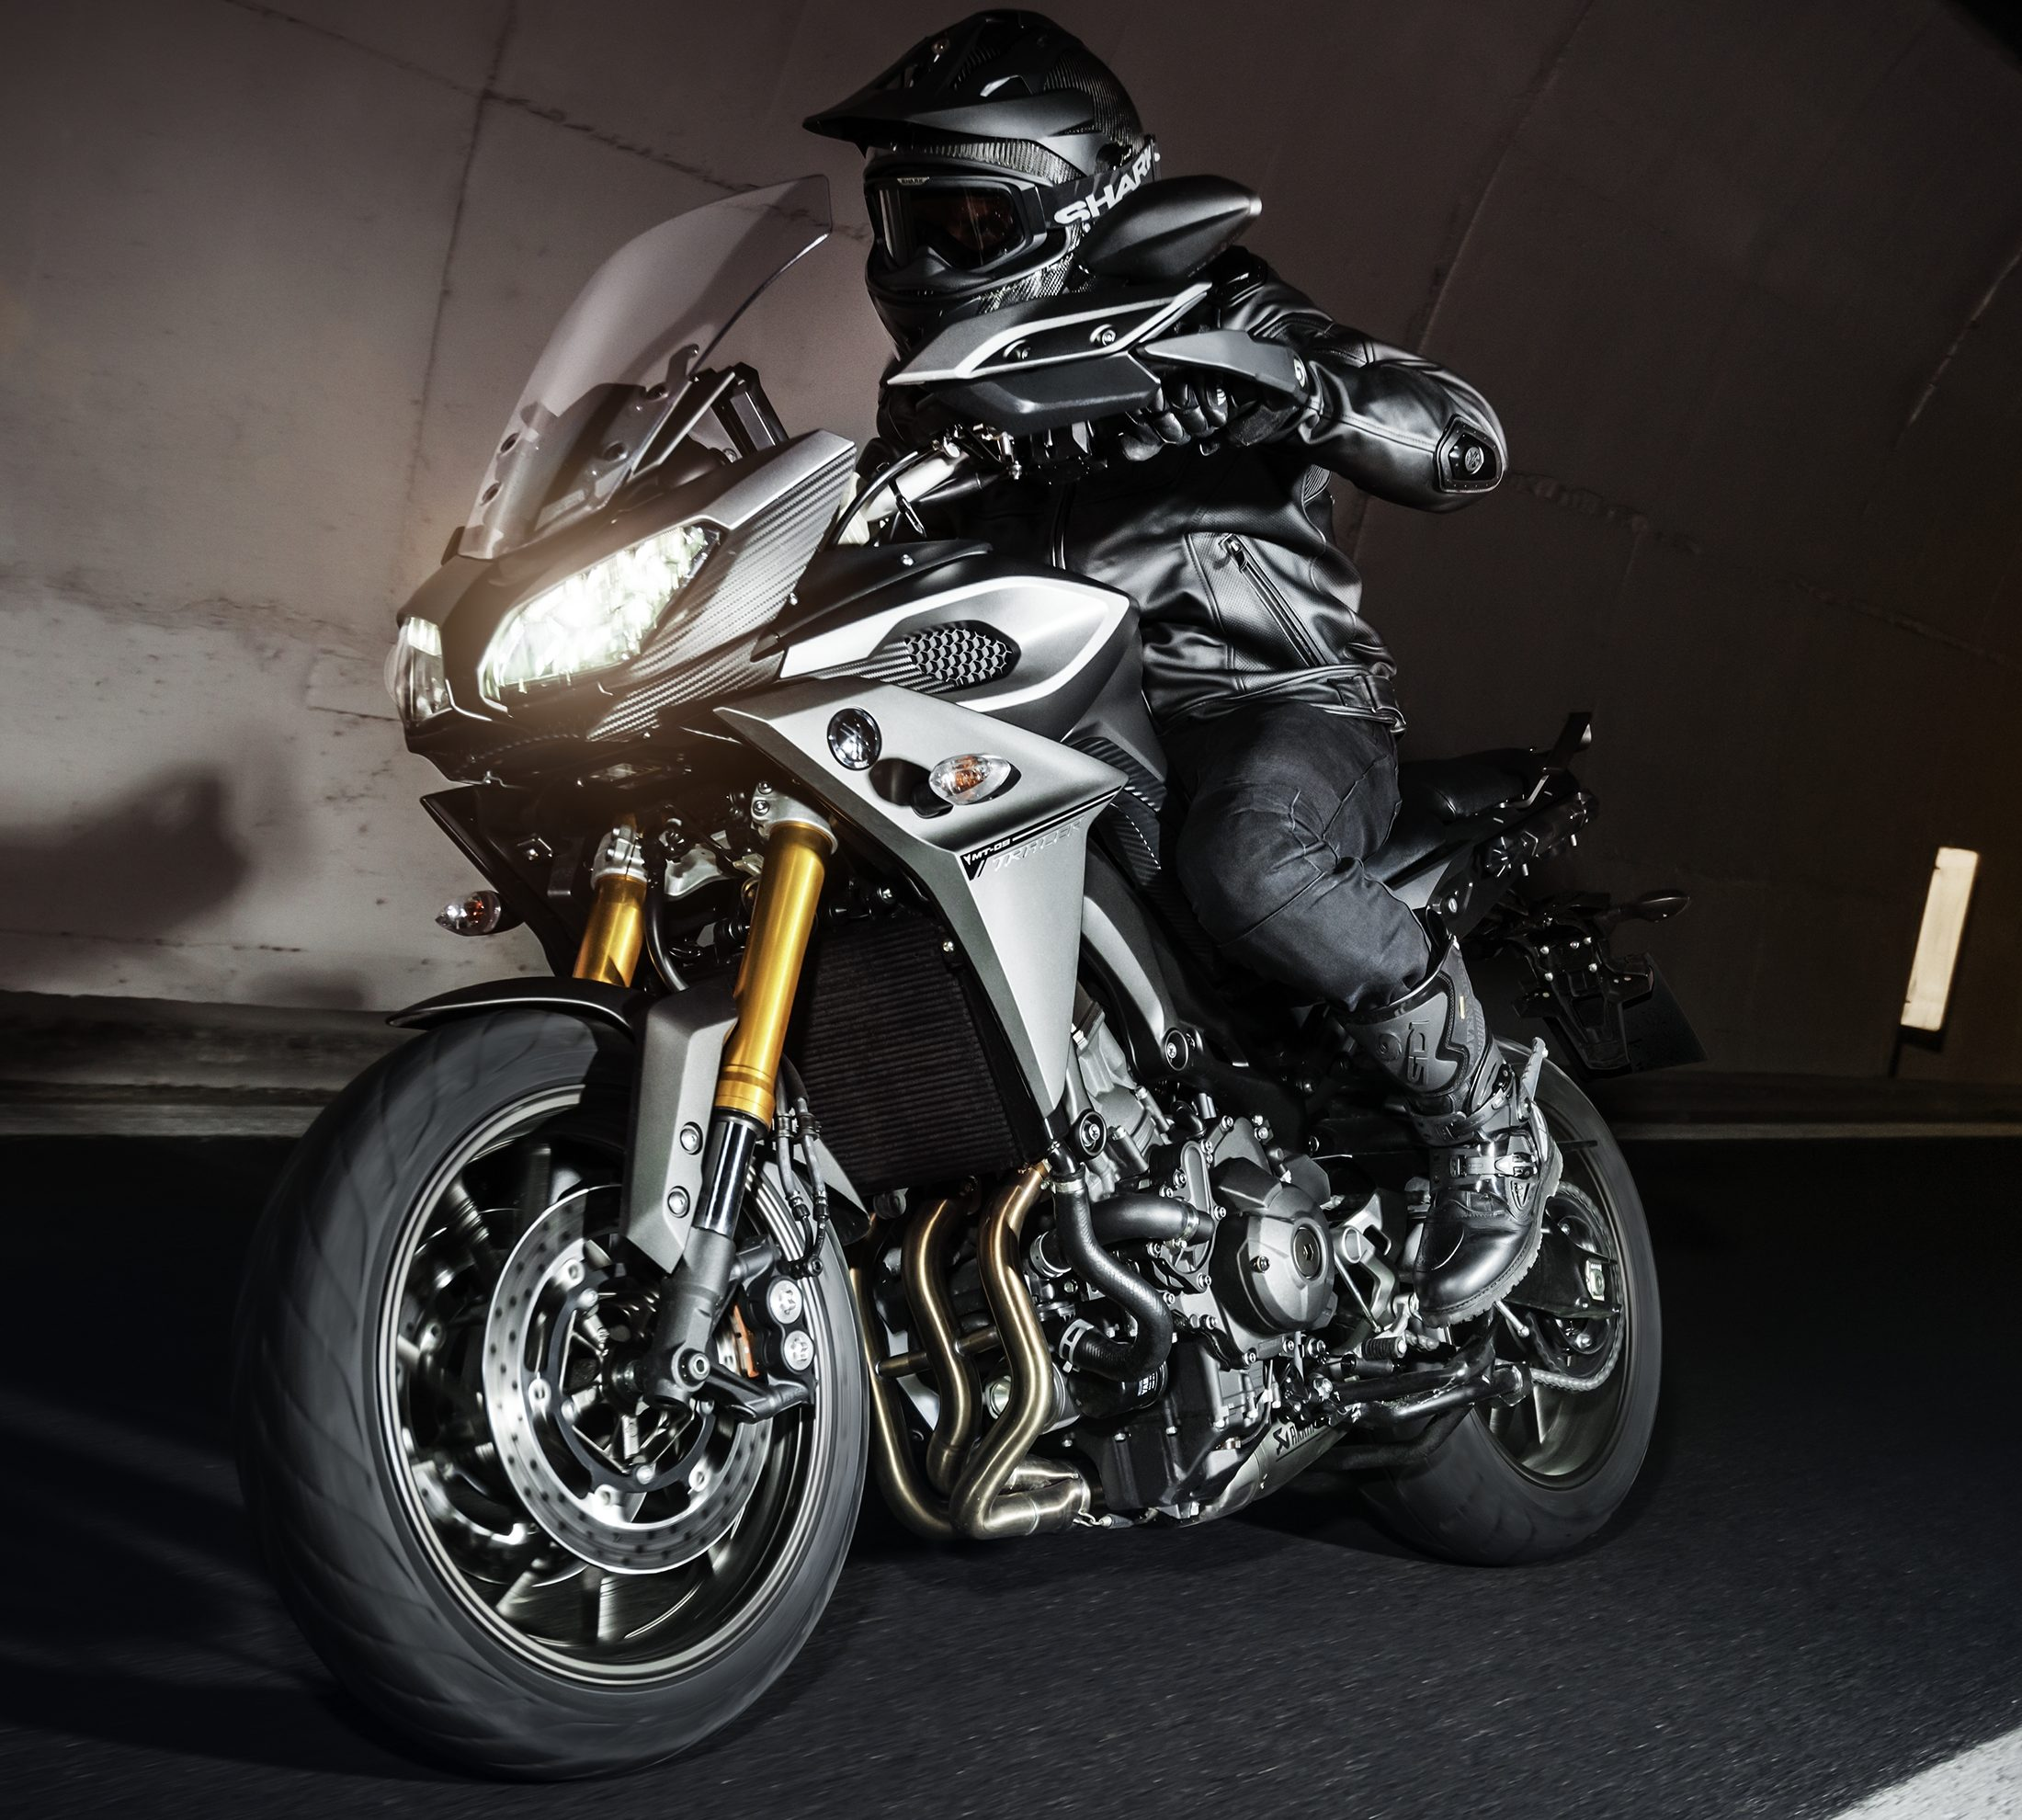 2016 yamaha mt 09 tracer in malaysia rm59 900 paul tan image 514835. Black Bedroom Furniture Sets. Home Design Ideas